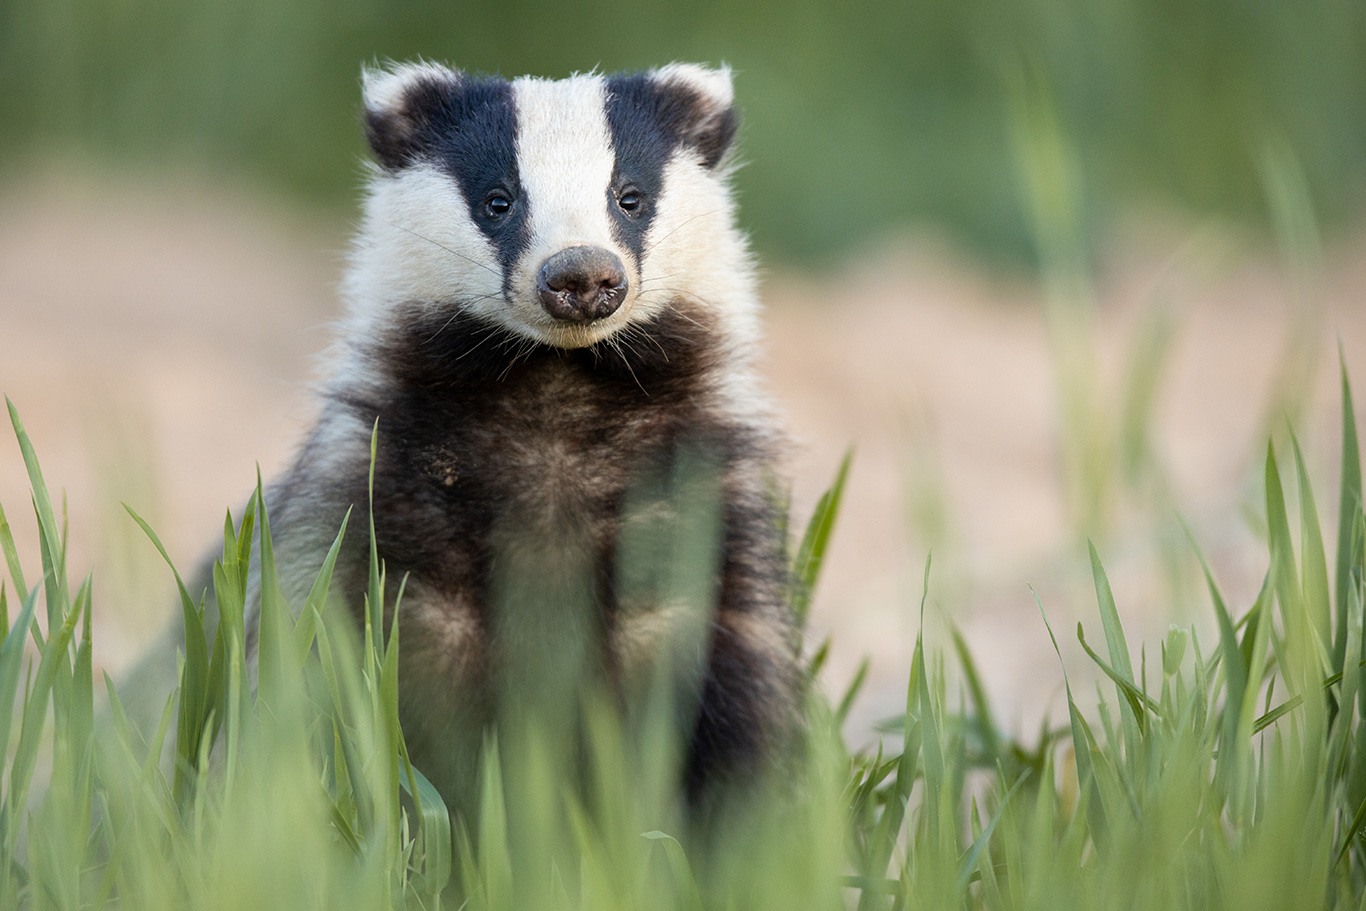 9,144 people have signed our badgers petition - help us reach 10,000! 2